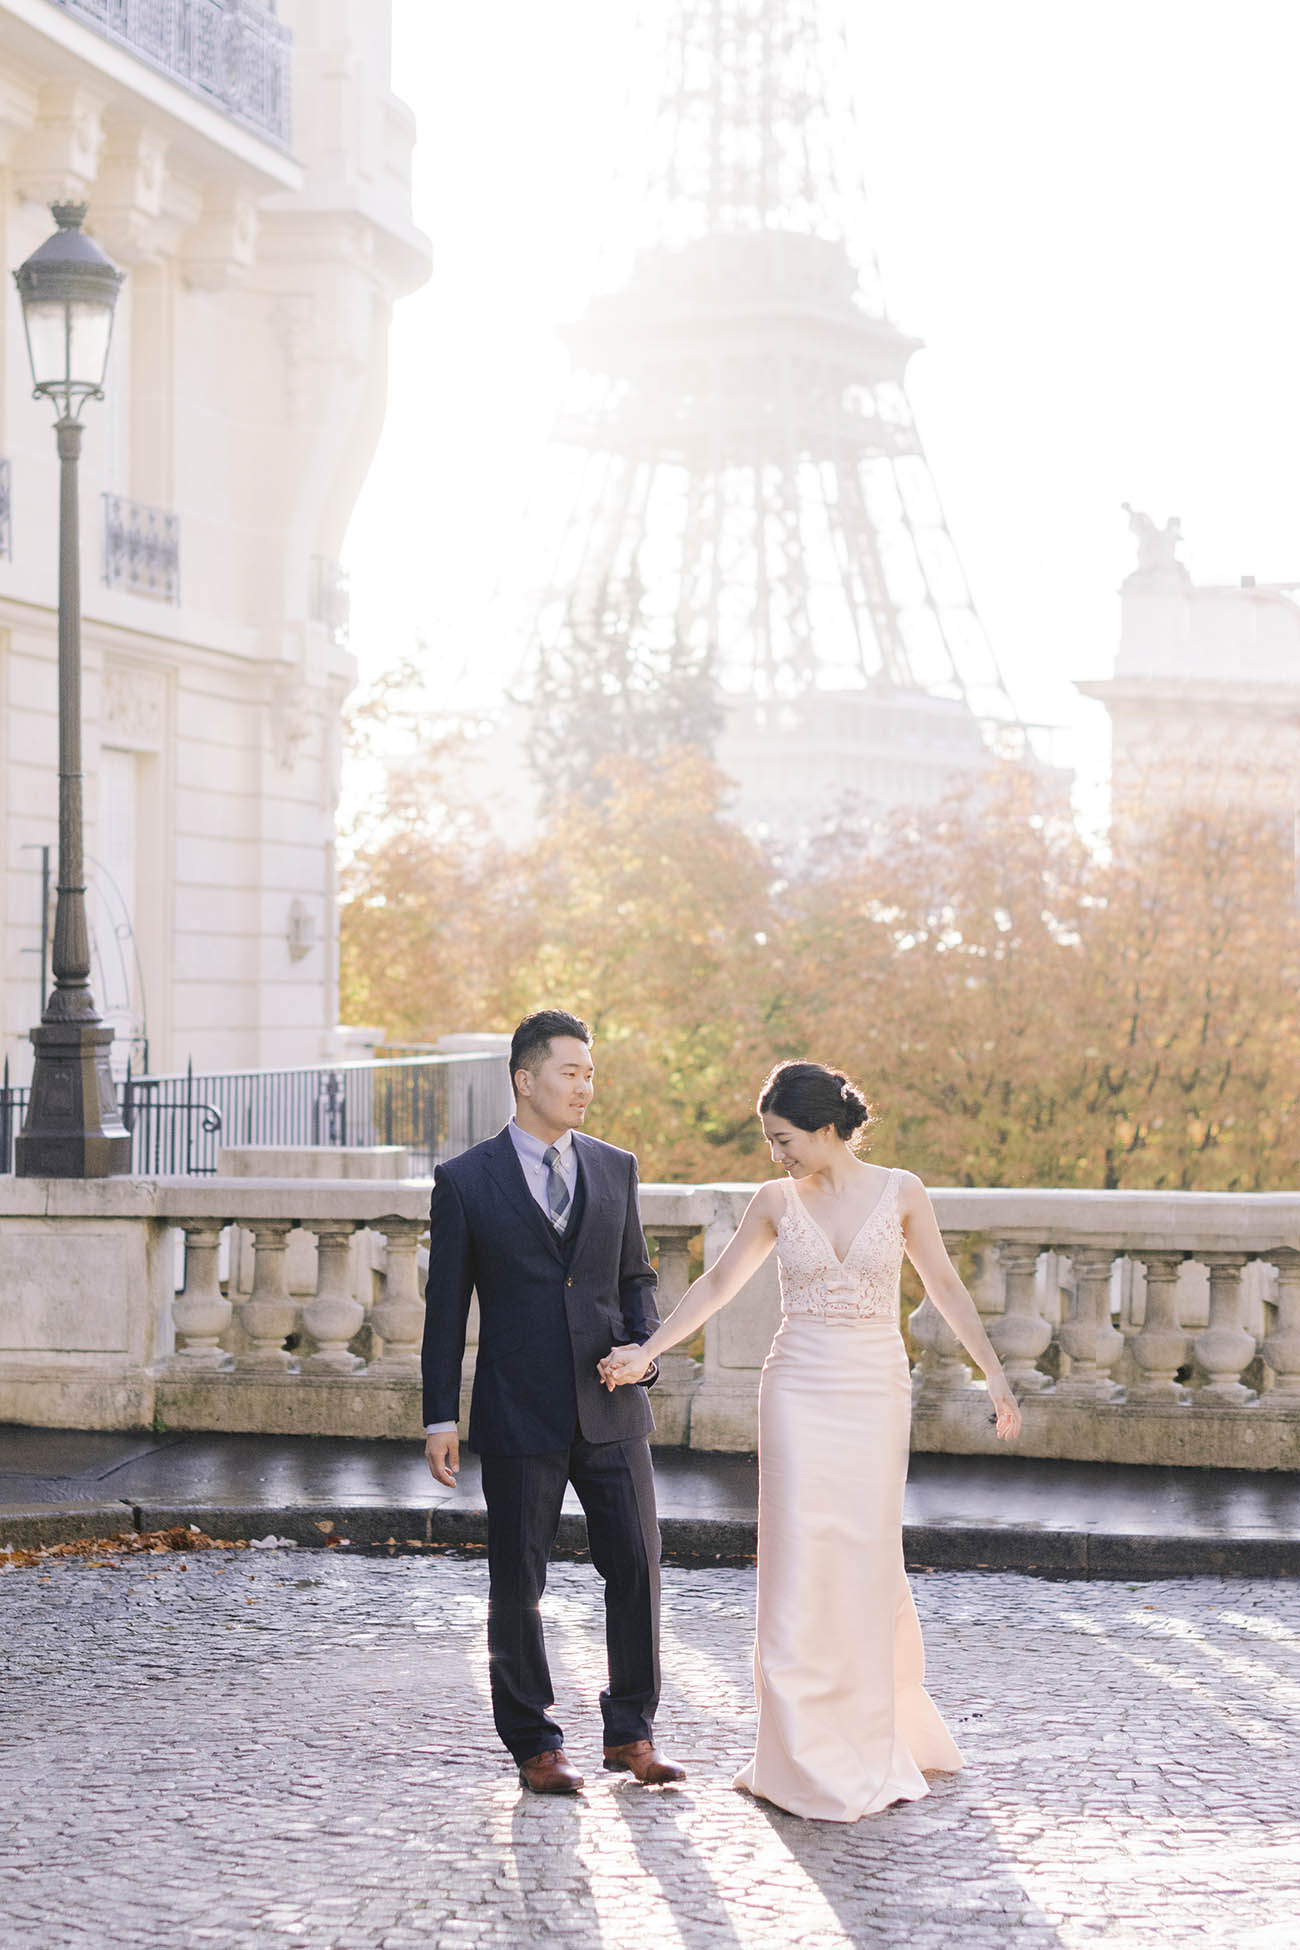 of the bride and groom walk on the street. Behind them the eiffel tower lit by morning light